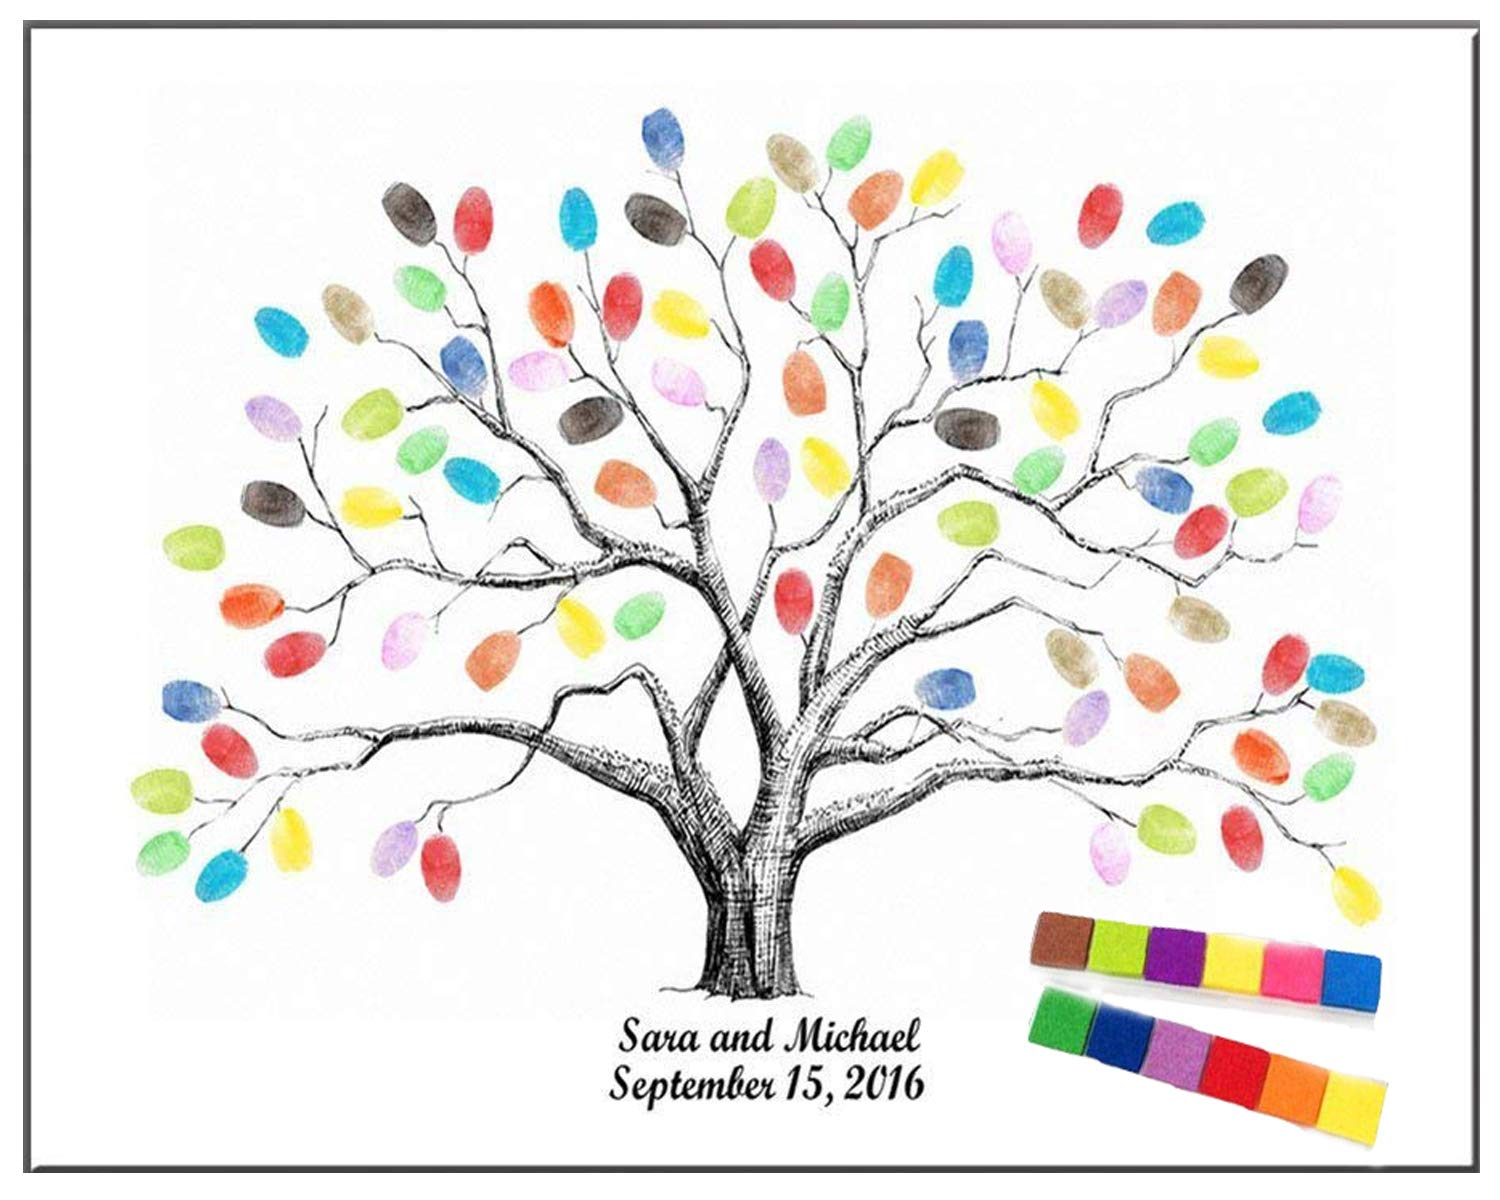 shelling home Thickening Waterproof Fingerprints Tree, 23.6'' Creative DIY Guest Signature Sign-in Book Canvas Fingerprints Tree Painting for Wedding Birthday Party with 12 PCS Ink Pads